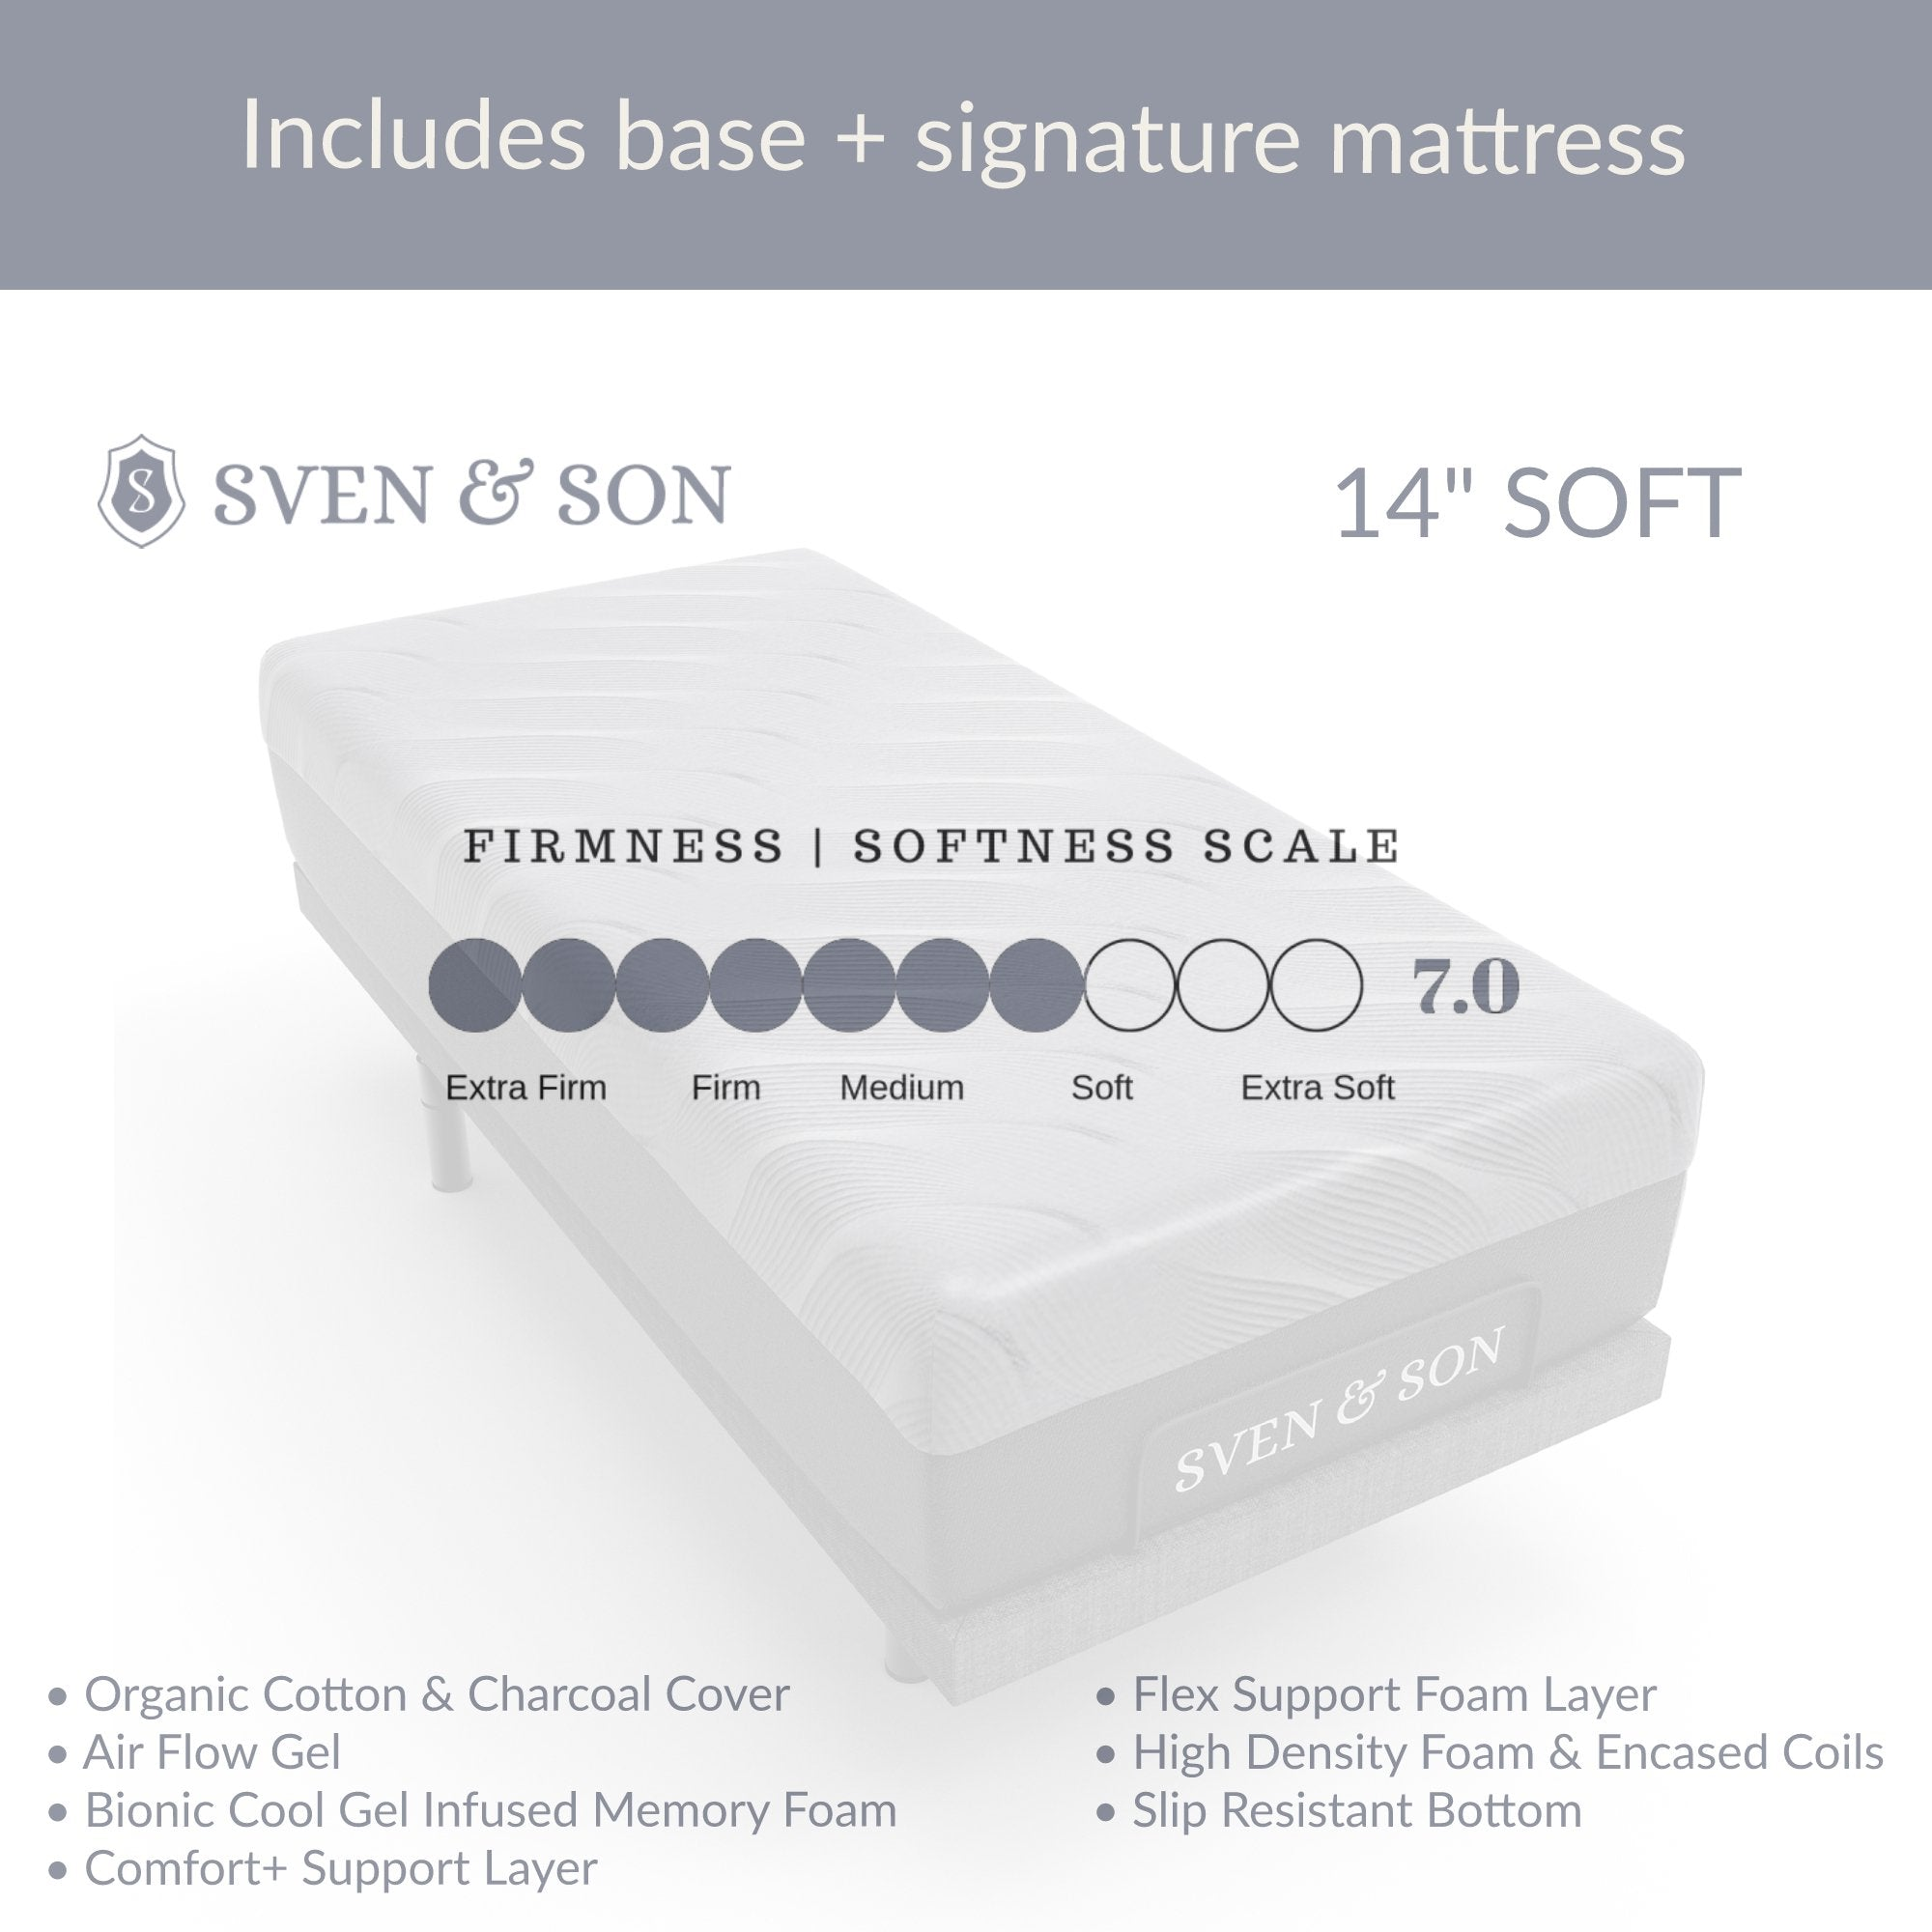 Classic + Head Tilt Adjustable Bed Base + Mattress Bundle bundle Sven & Son